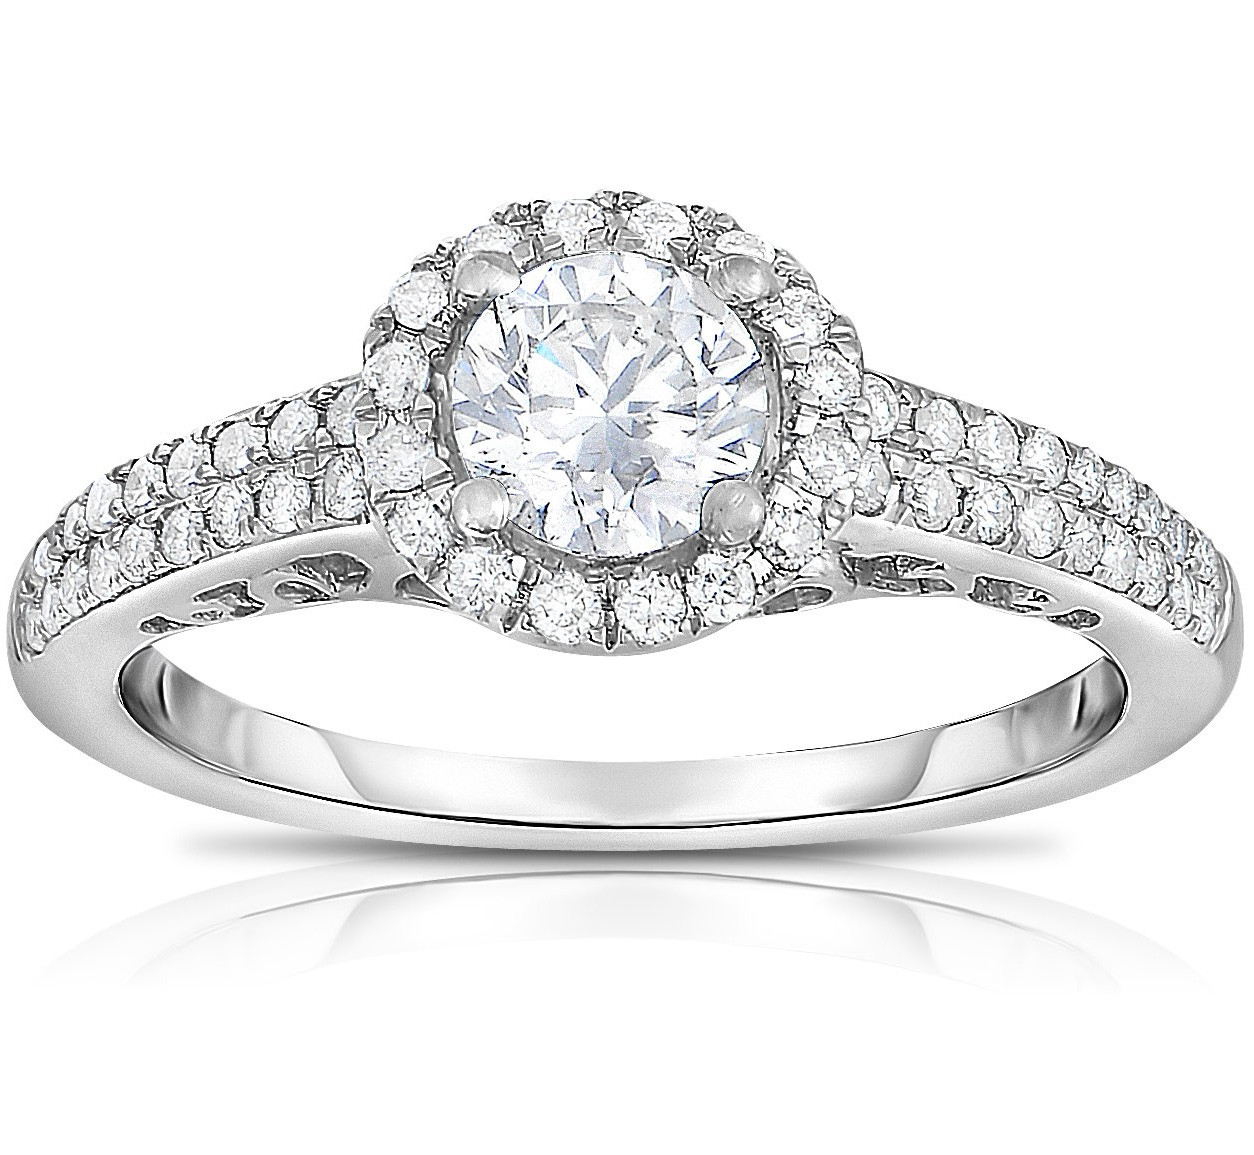 1 carat round halo two row diamond engagement ring for her. Black Bedroom Furniture Sets. Home Design Ideas